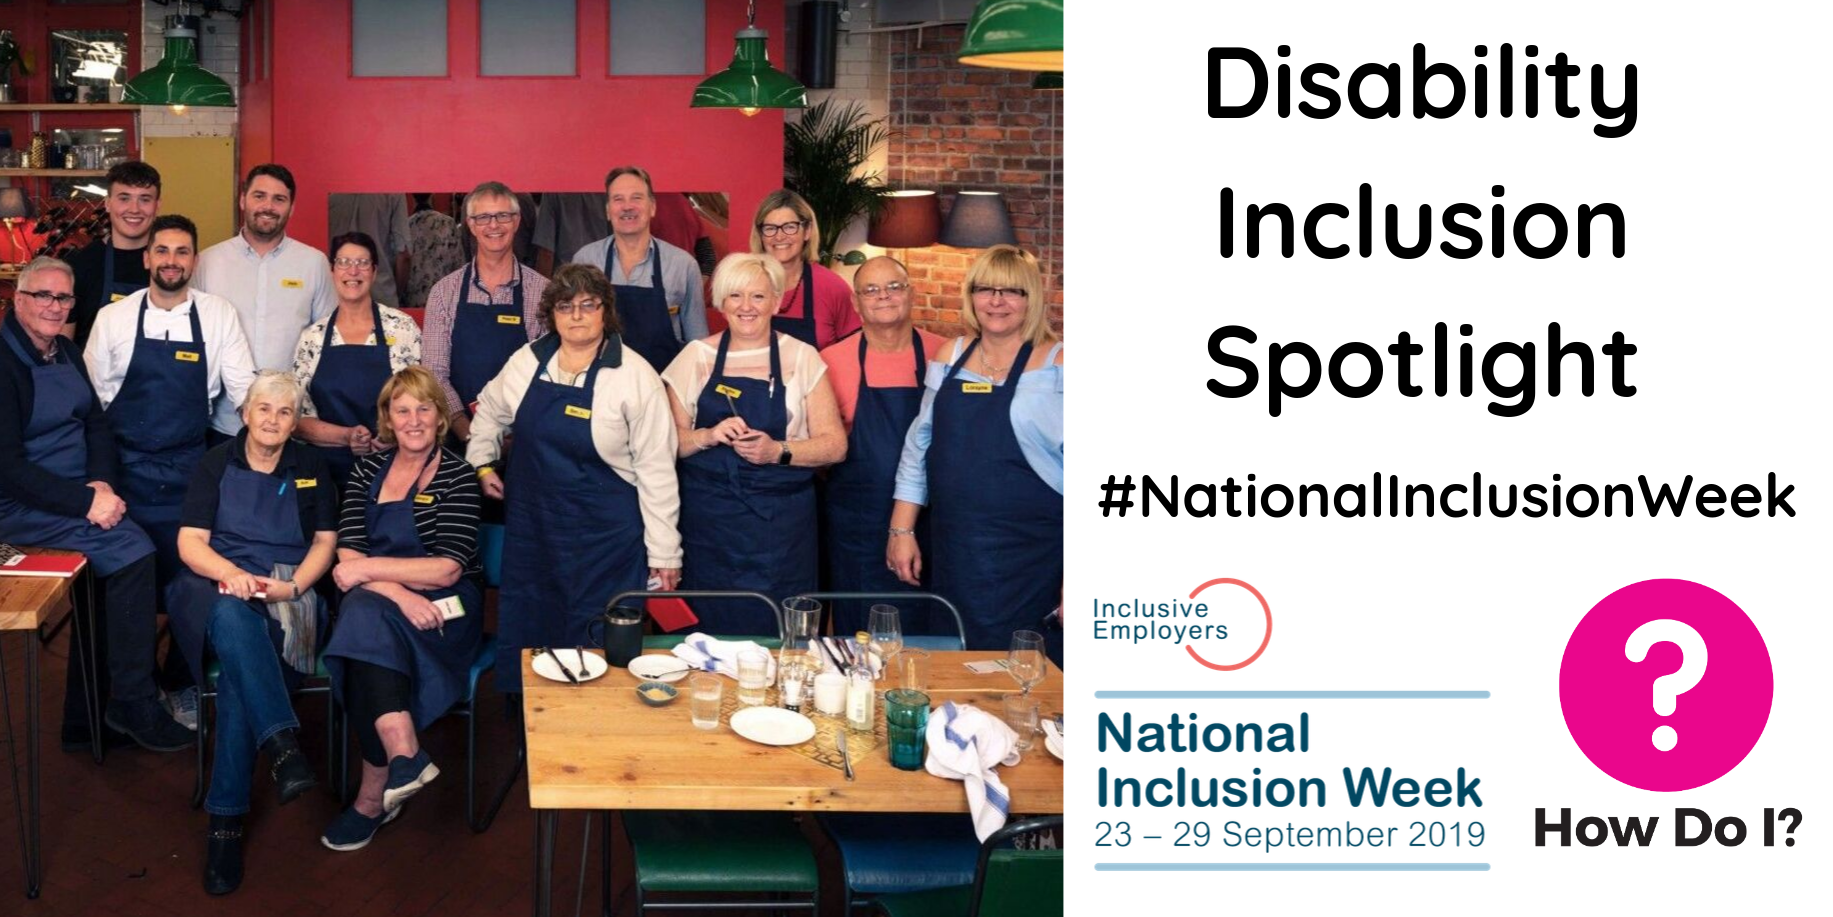 Alt text: Disability Inclusion Spotlight #NationalInclusionWeek. Under the title is the How Do I? and National Inclusion Week logo. Pictured to the left is a group shot of all the volunteers and employees at The Restaurant That Makes Mistakes, sitting together at the establishment.